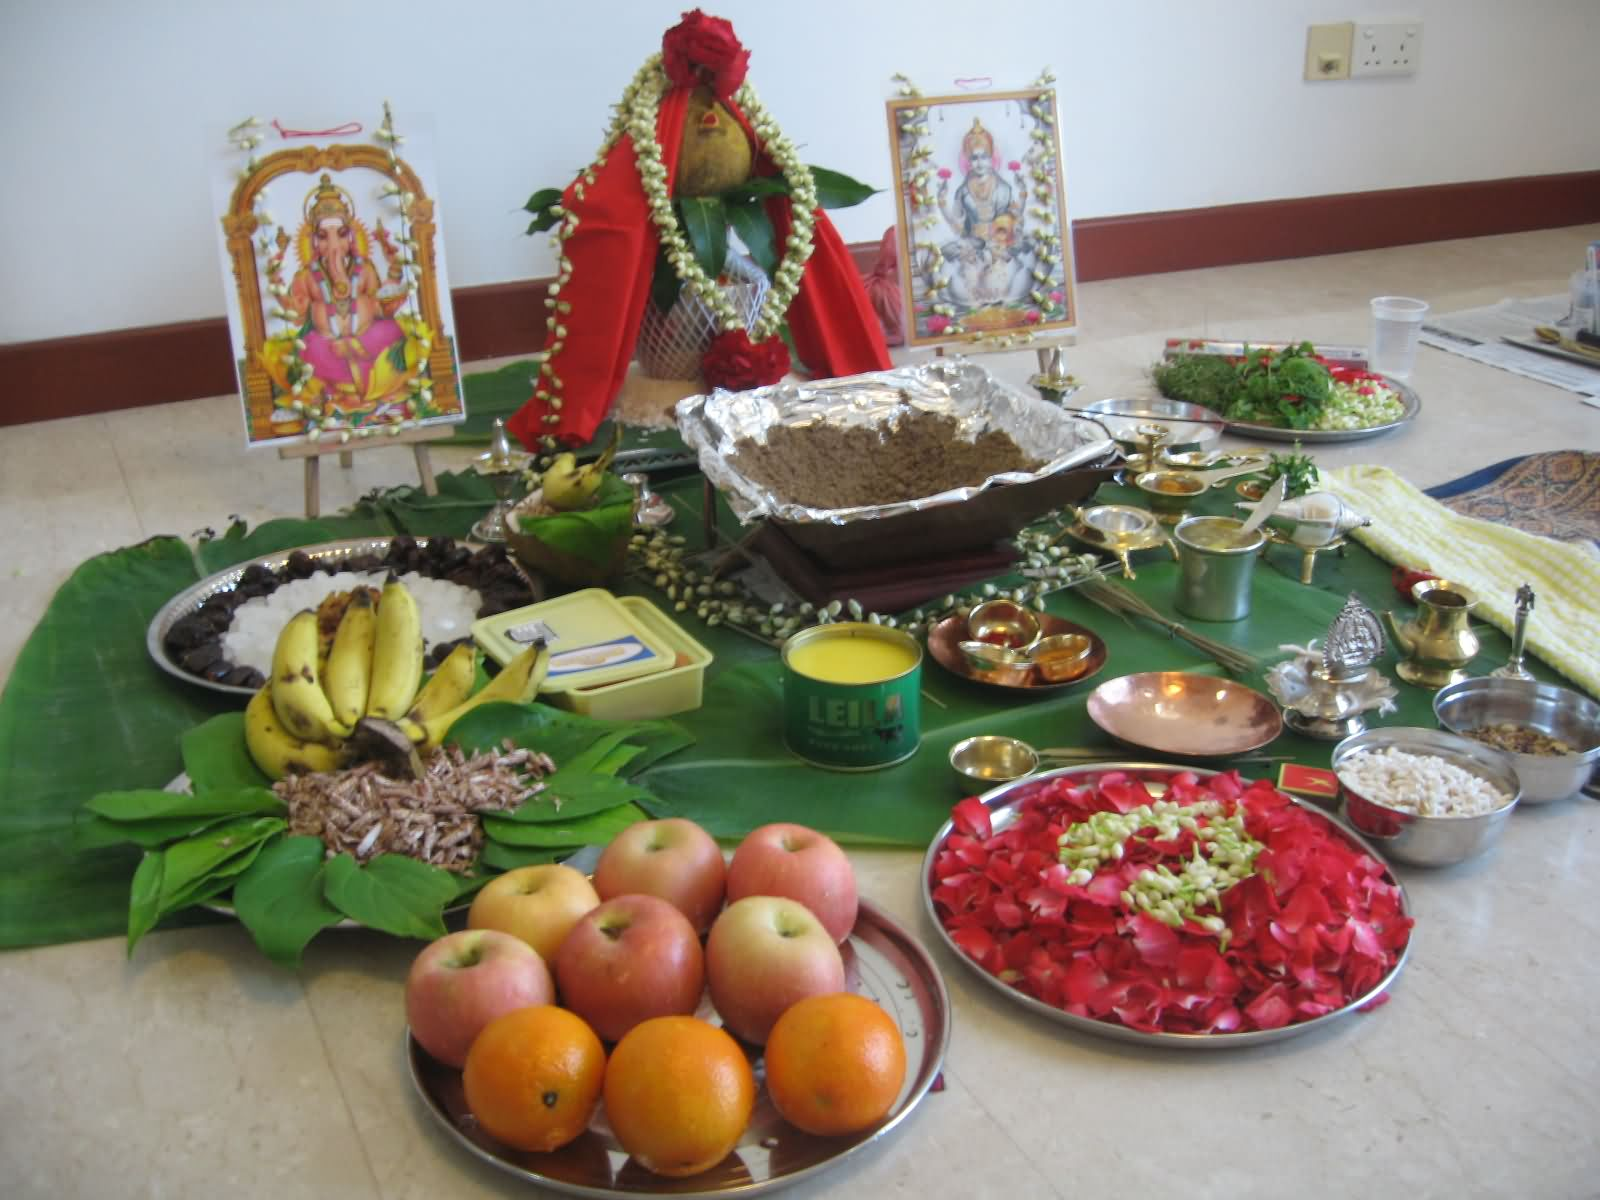 23-the-priest-set-it-for-puja